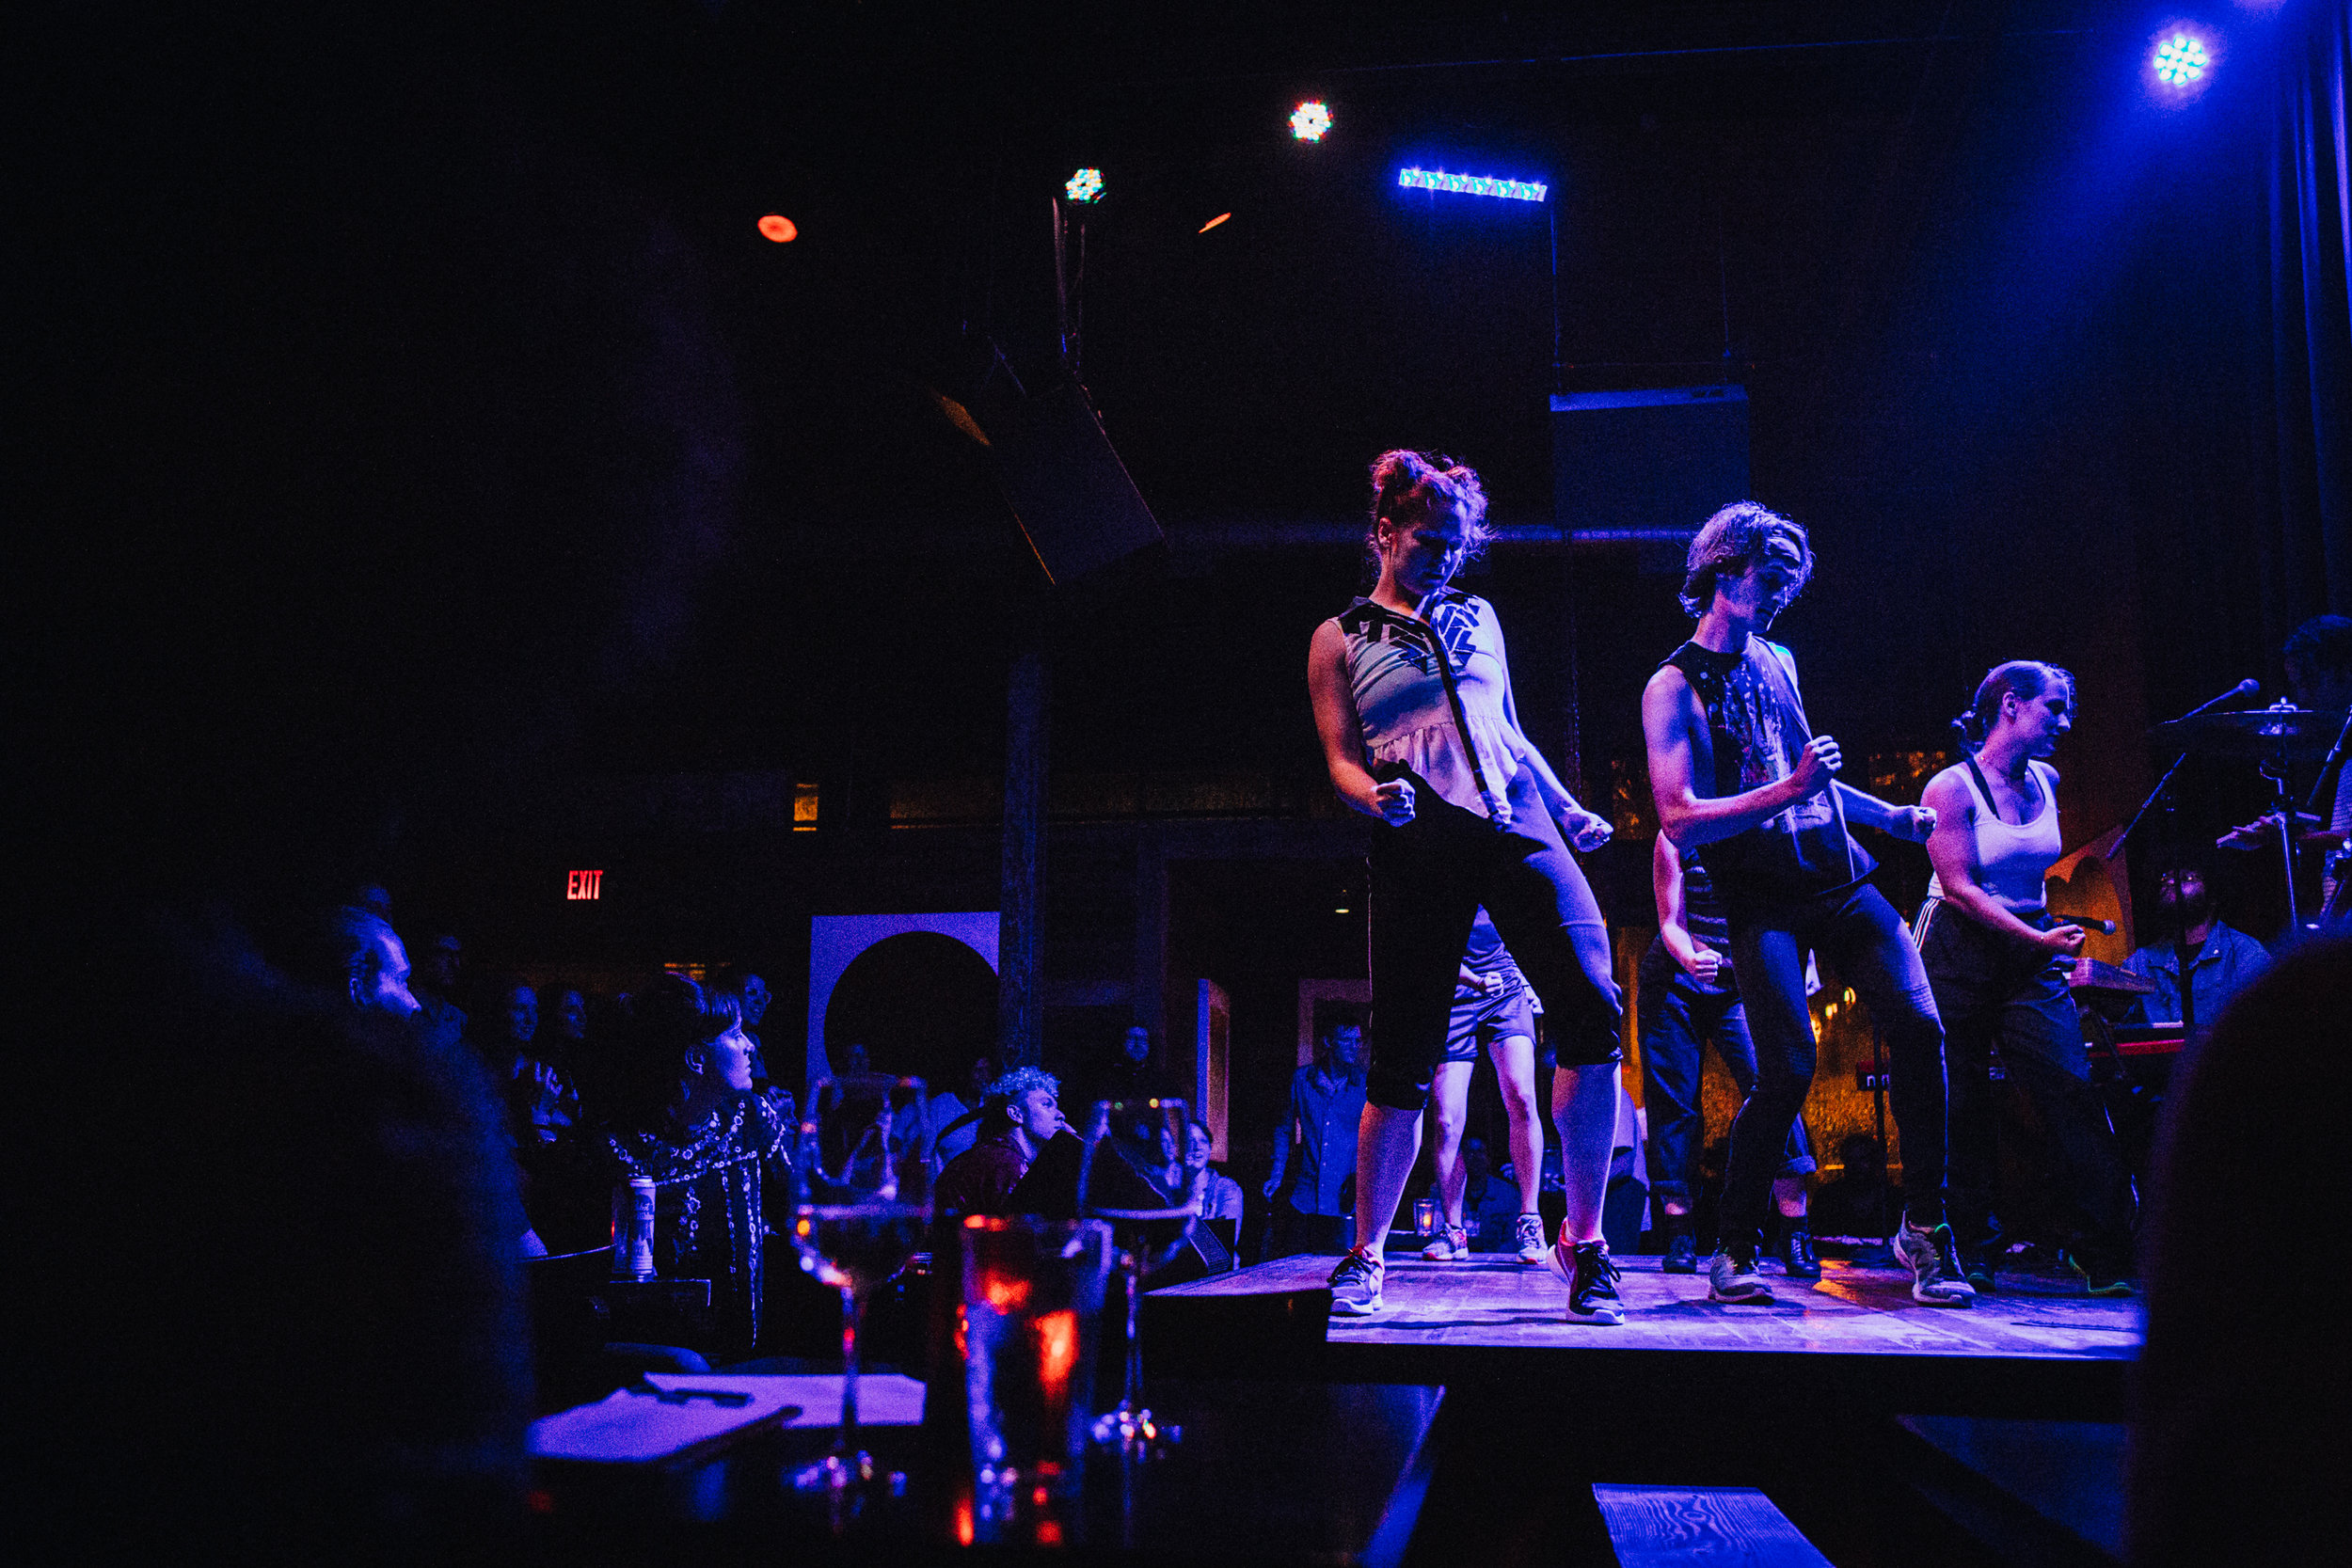 Audiences and performers connect at our first Bar Music Concert. Photo Emmet Kowler